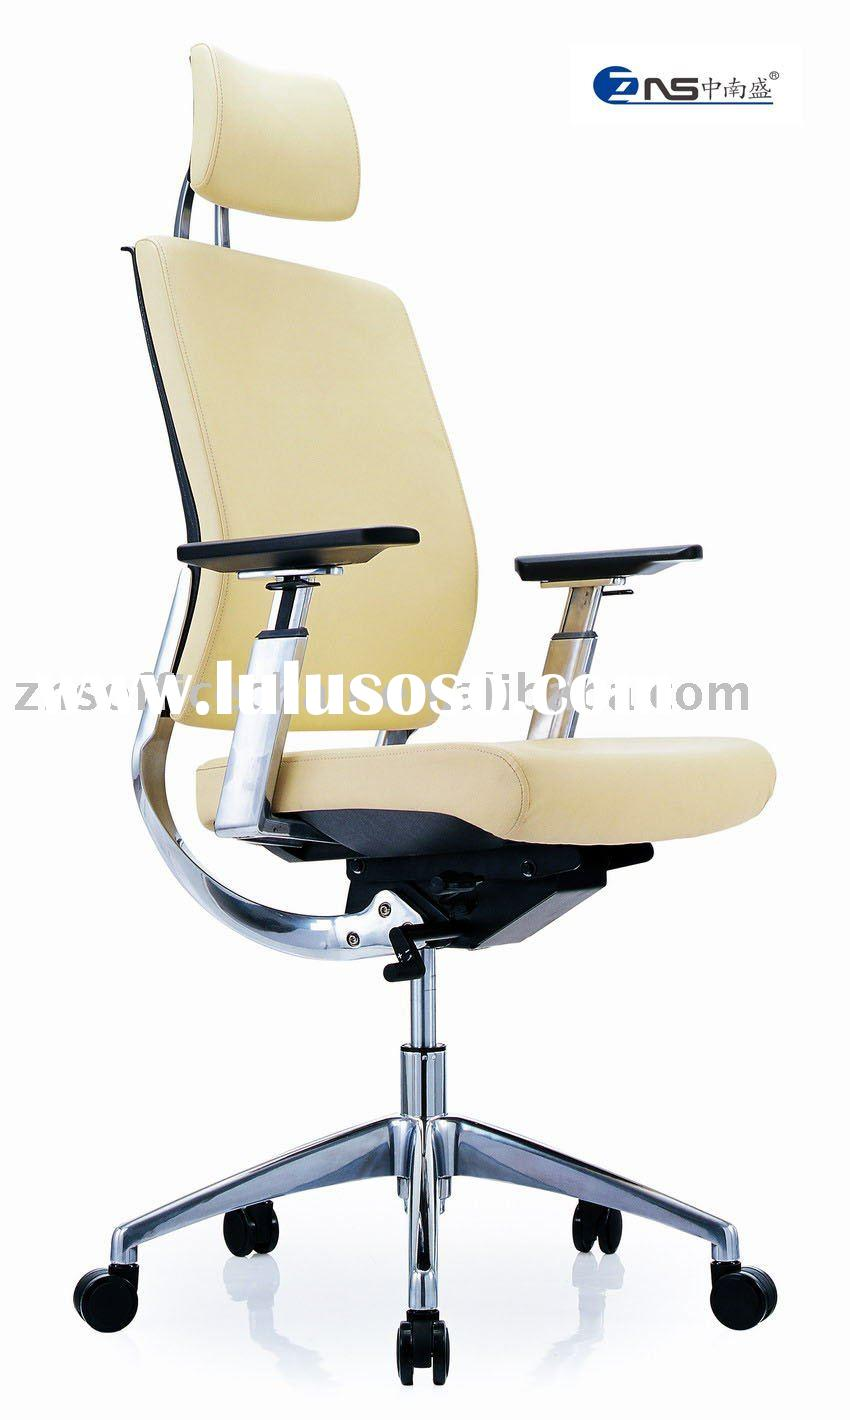 office chair/office furniture/chair/Executive Office chair